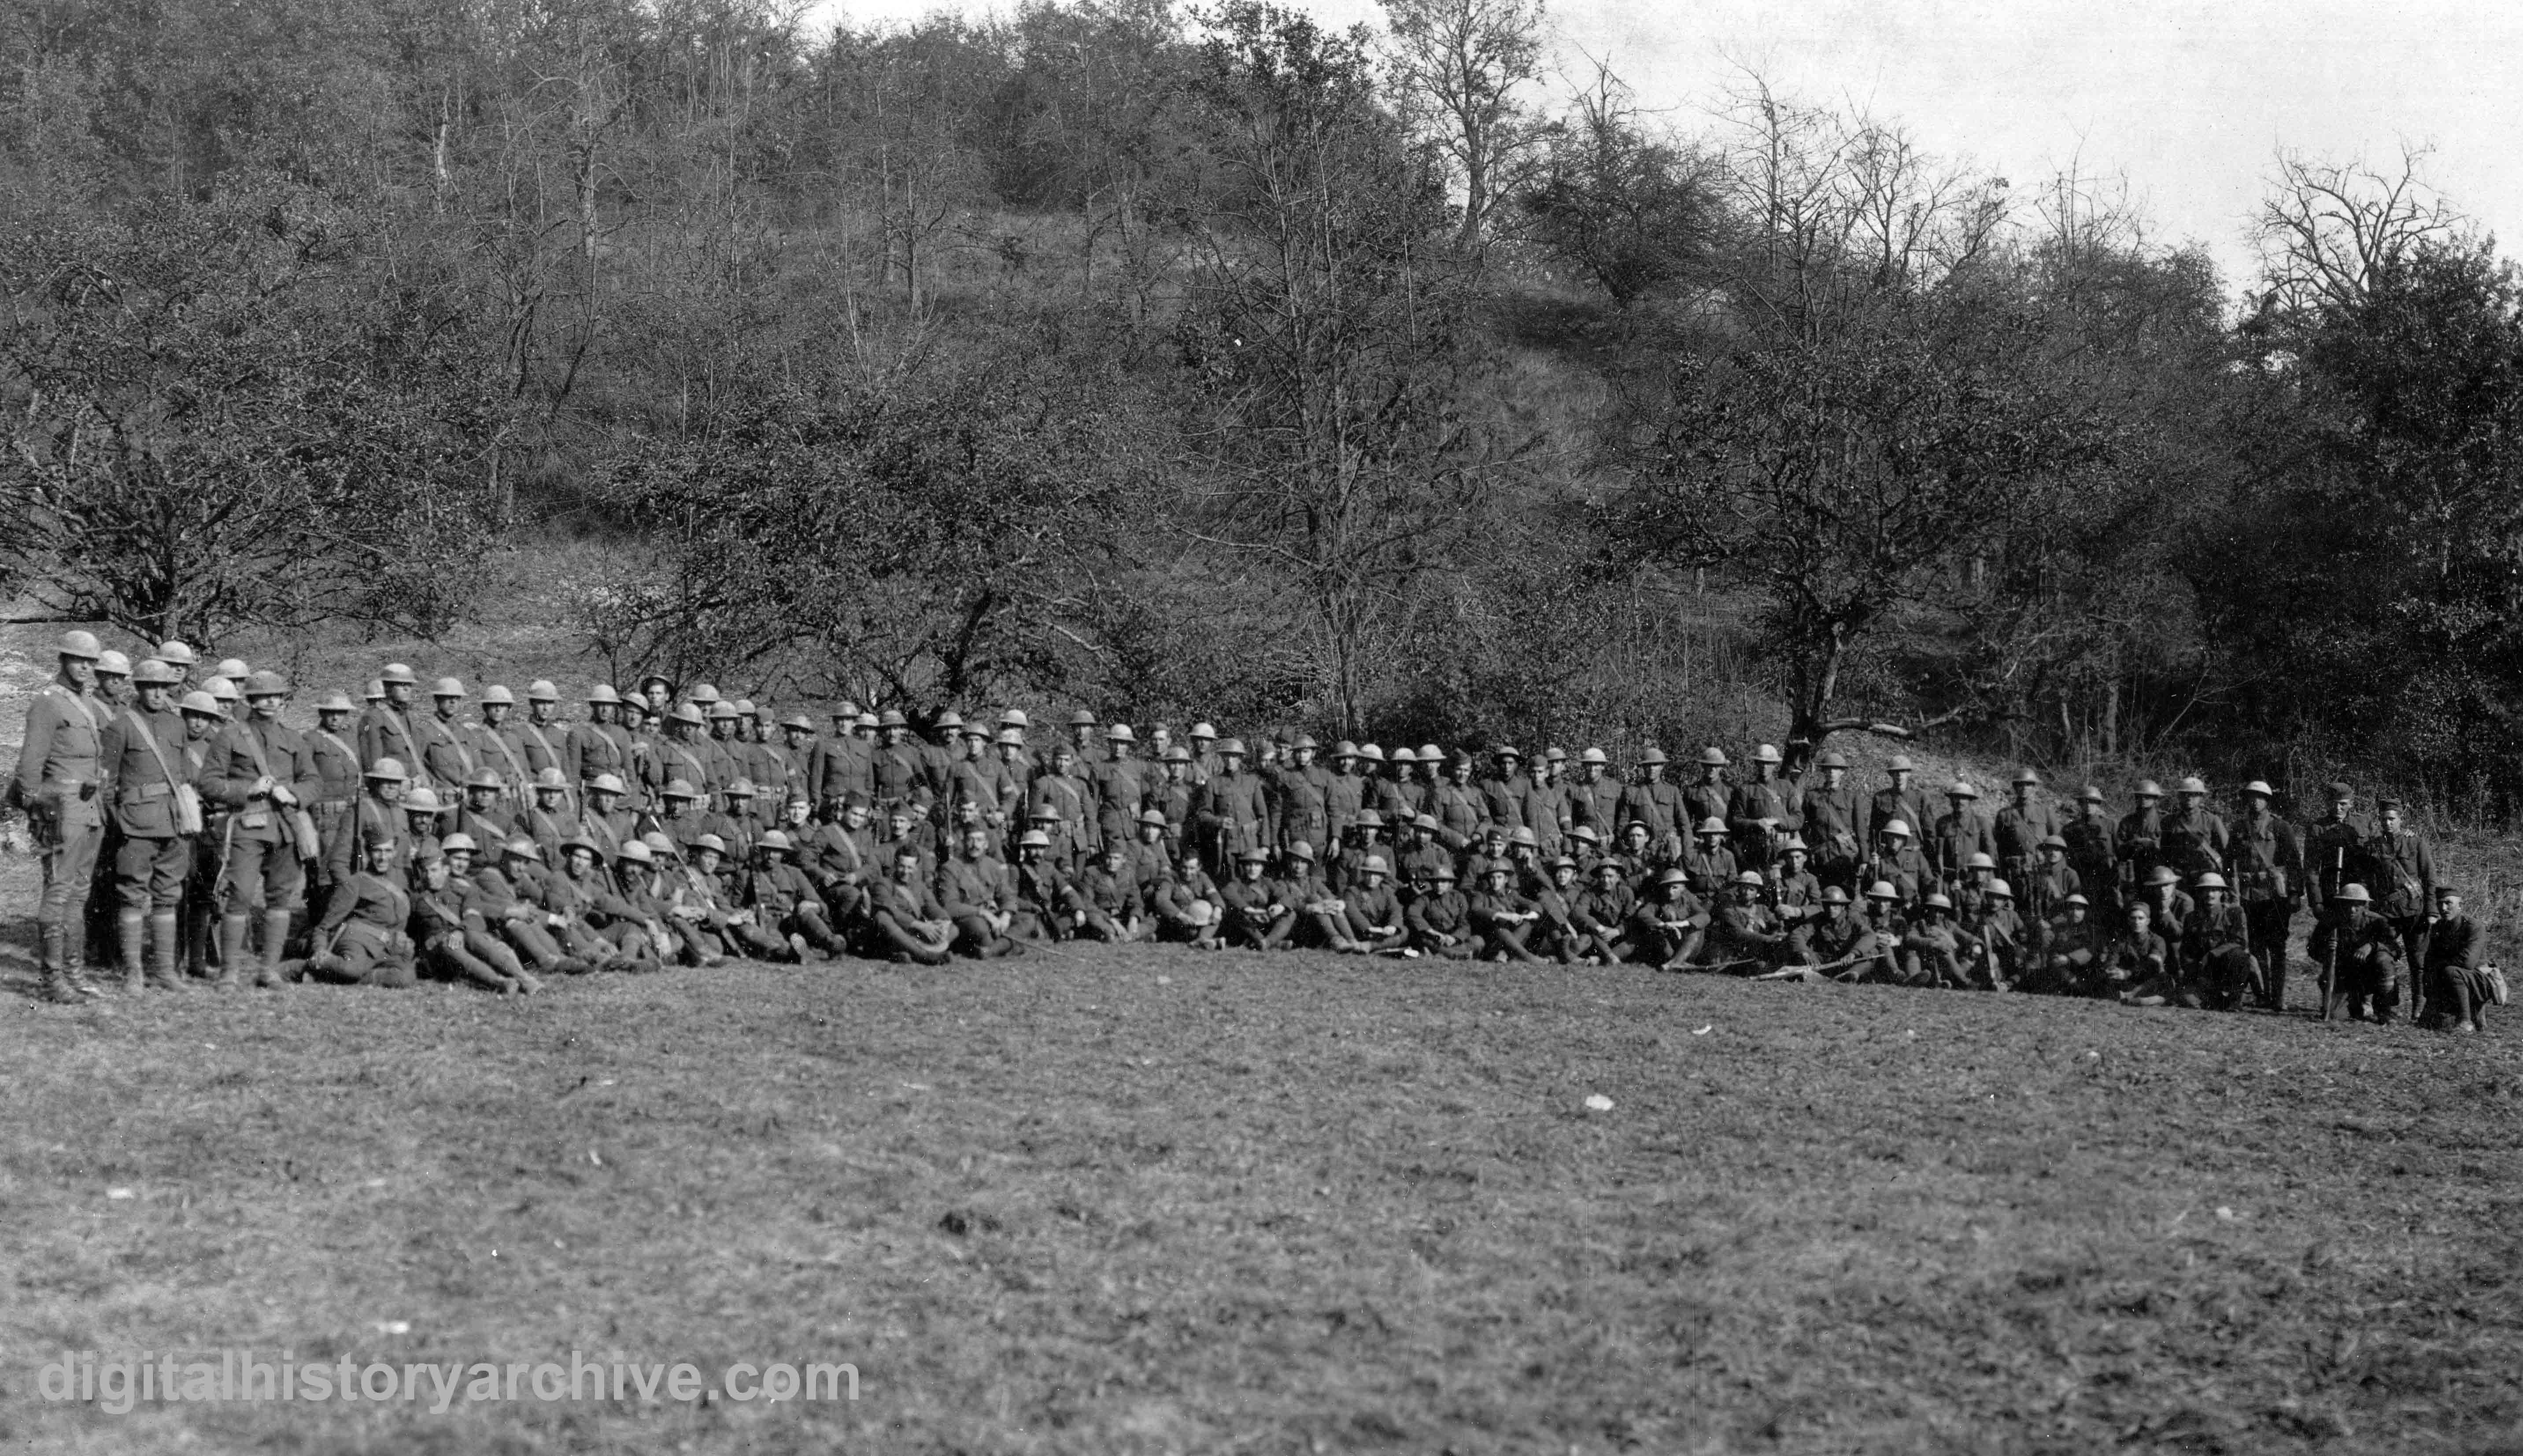 WWI, 1918. Major Charles Whittlesley and surviving soldiers of the ...